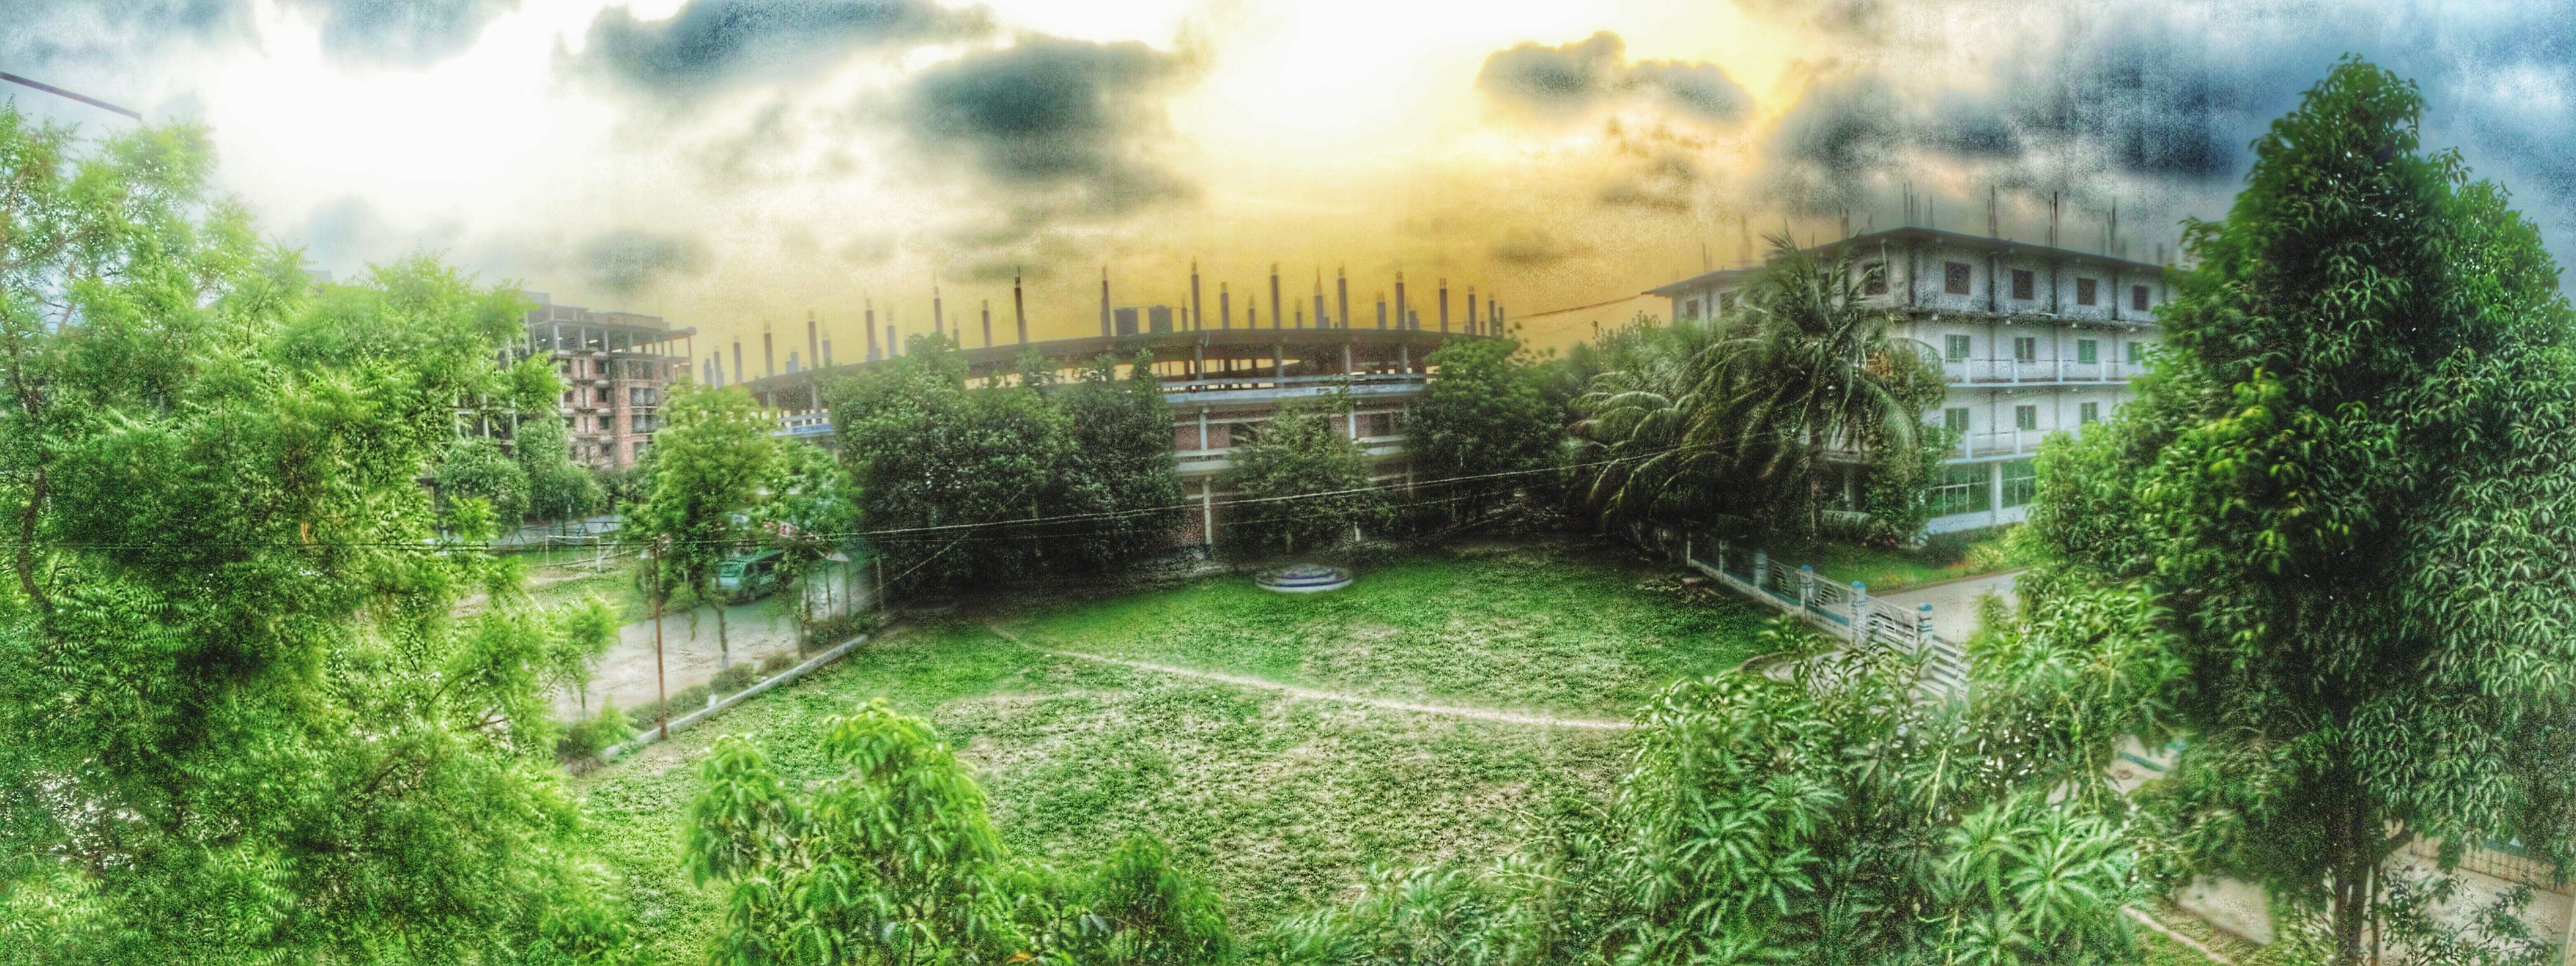 grass, tree, growth, green color, field, sunbeam, plant, sunlight, nature, tranquility, sky, built structure, architecture, building exterior, sun, beauty in nature, tranquil scene, landscape, grassy, lens flare